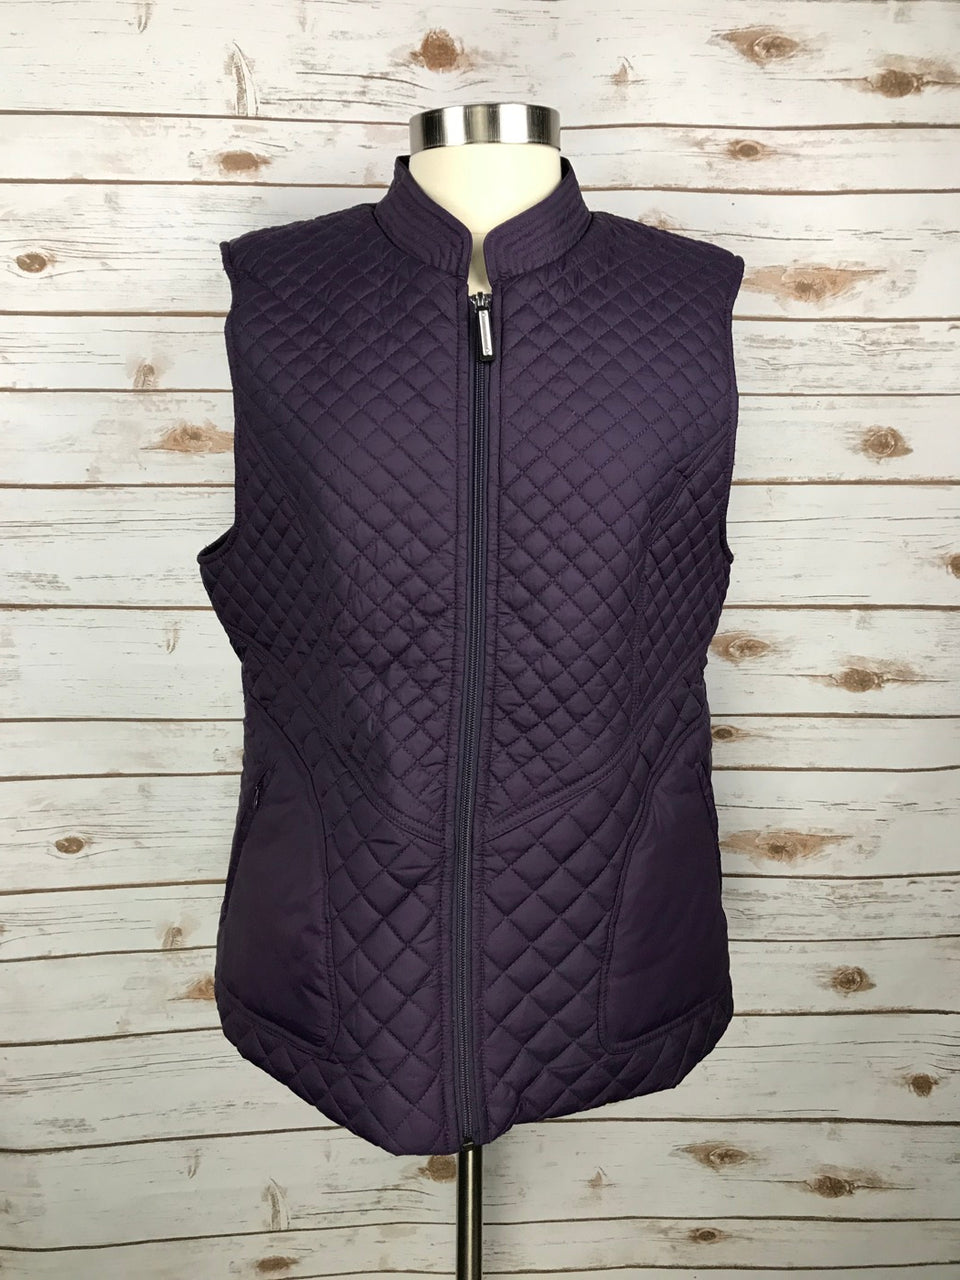 Asmar Equestrian Icon Quilted Vest in Plum - Women's XL